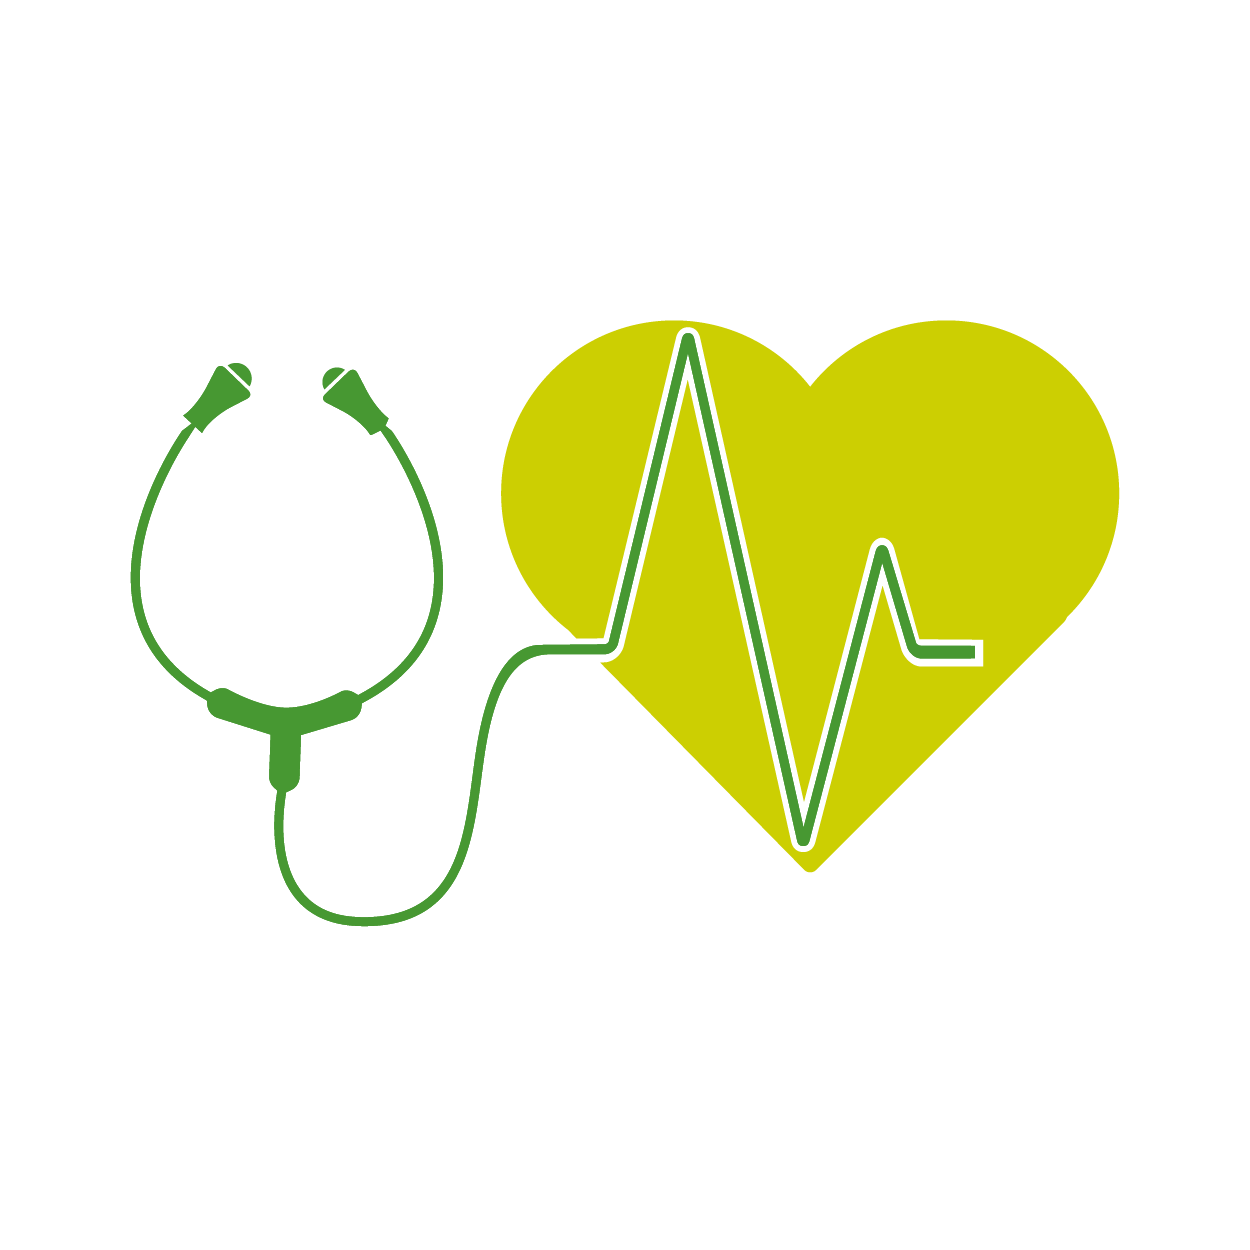 Health Png Clipart - Health, Transparent background PNG HD thumbnail